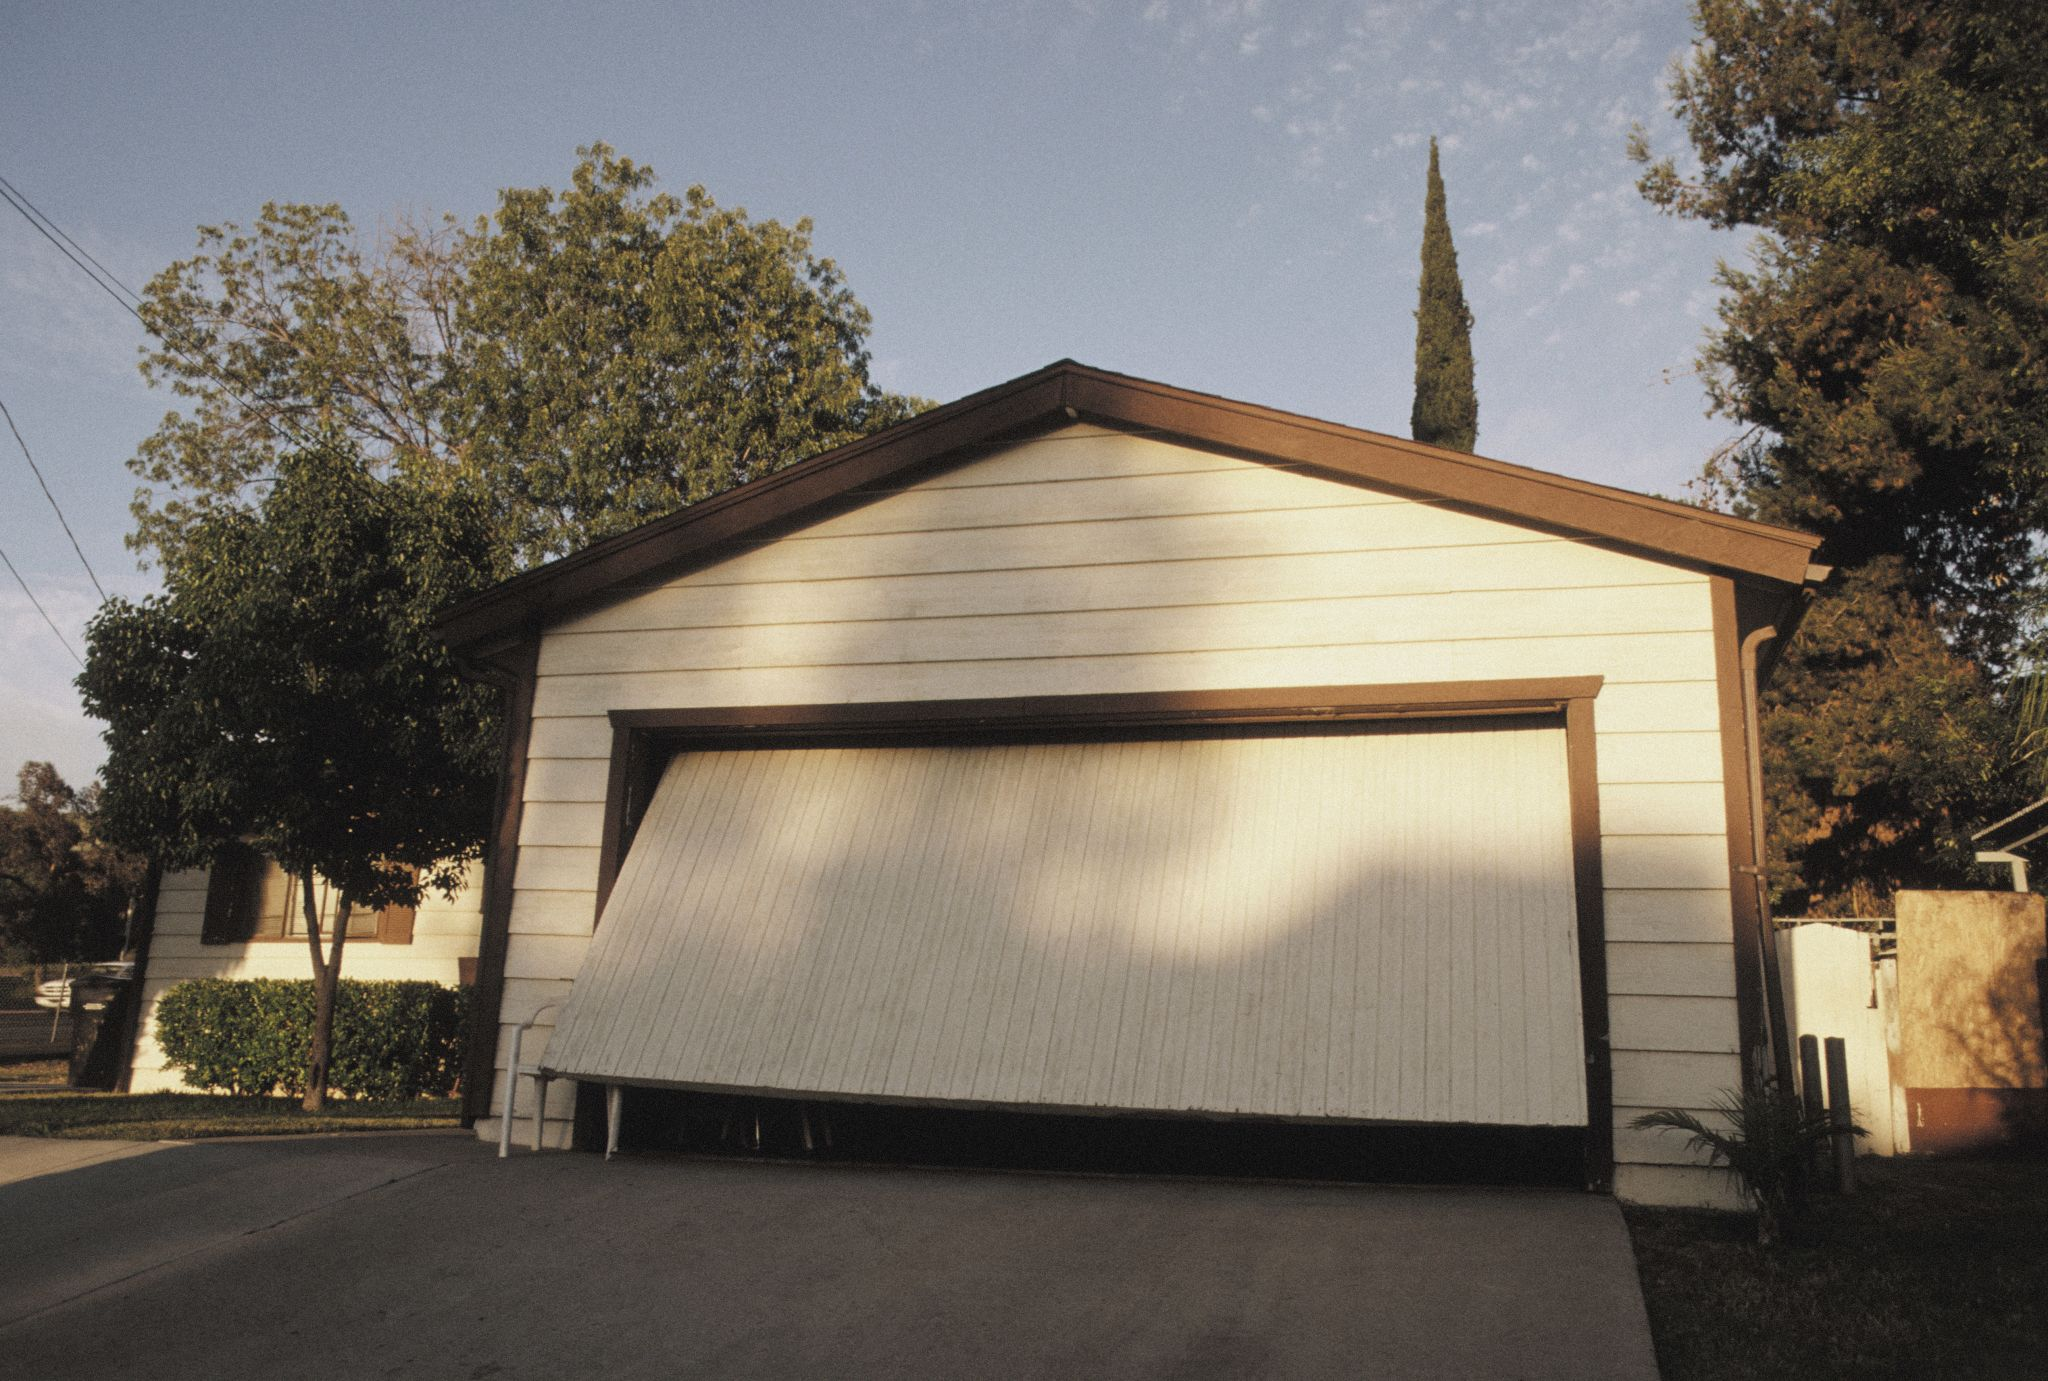 Hoa garage door policy draws auburn residents ire sfgate rubansaba